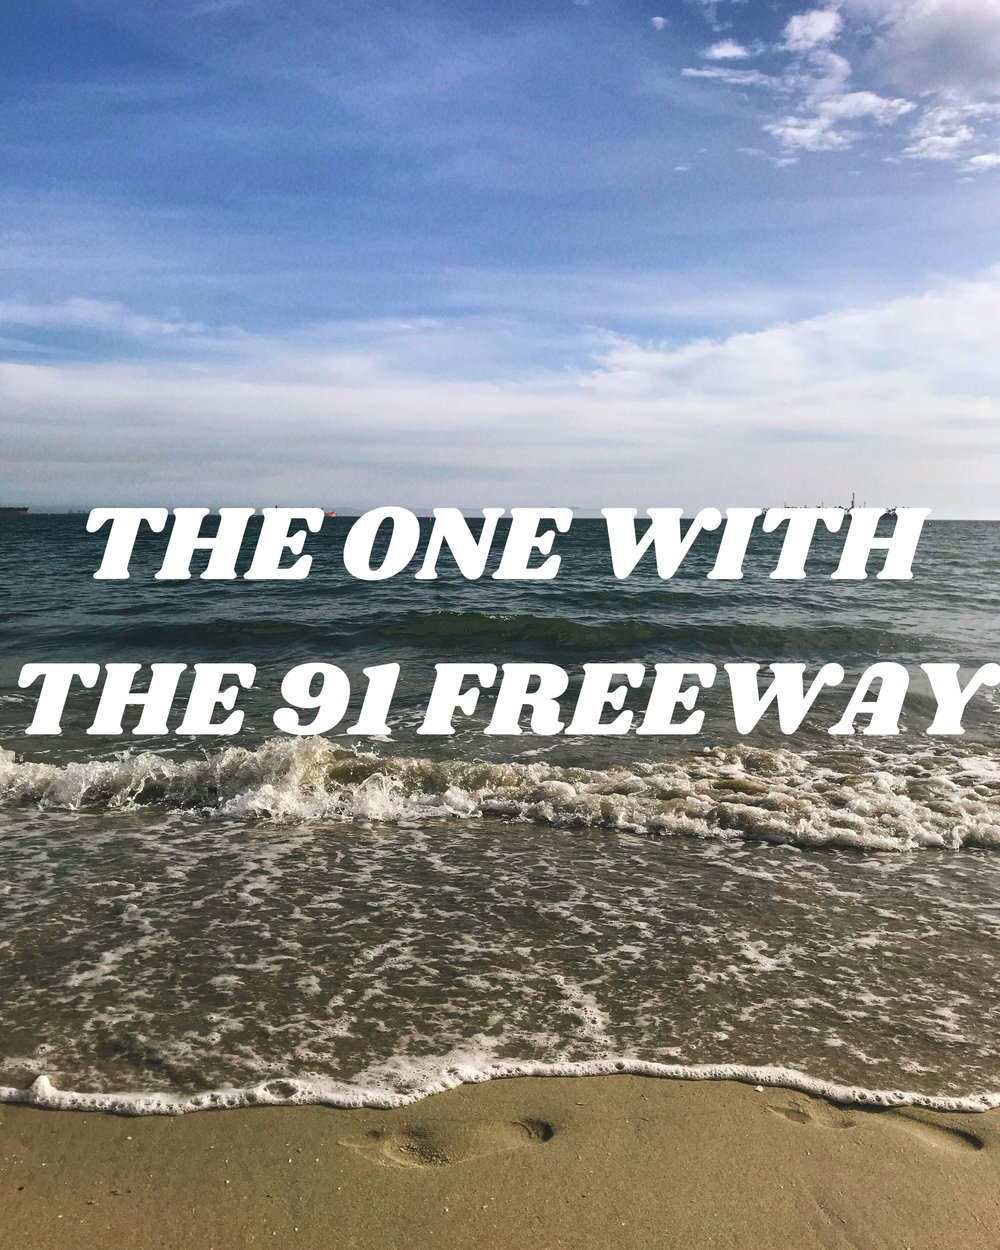 The One With the 91 Freeway 5/6/18 — Ganges Gal